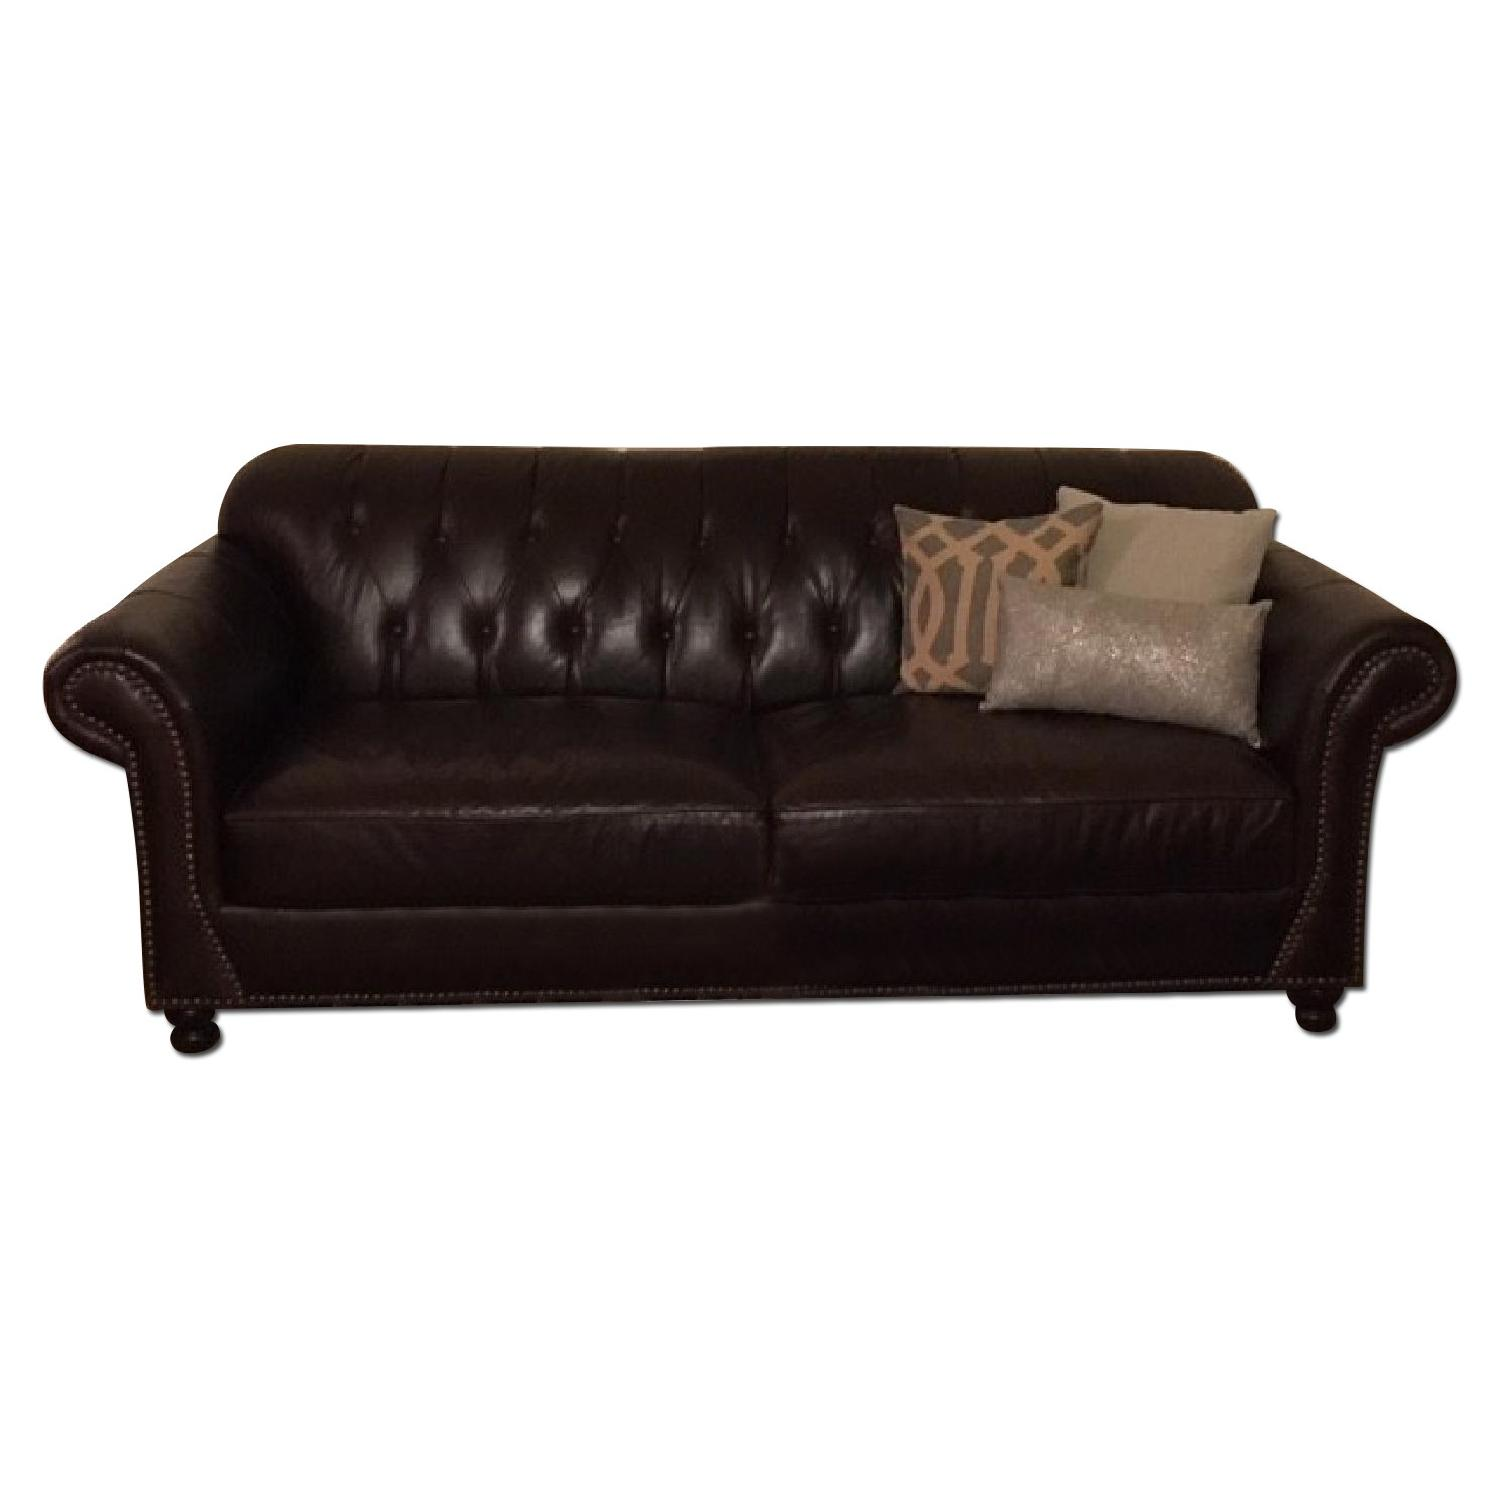 ABC Carpet & Home Brown Leather Couch w/ Nailhead Detailing - image-0